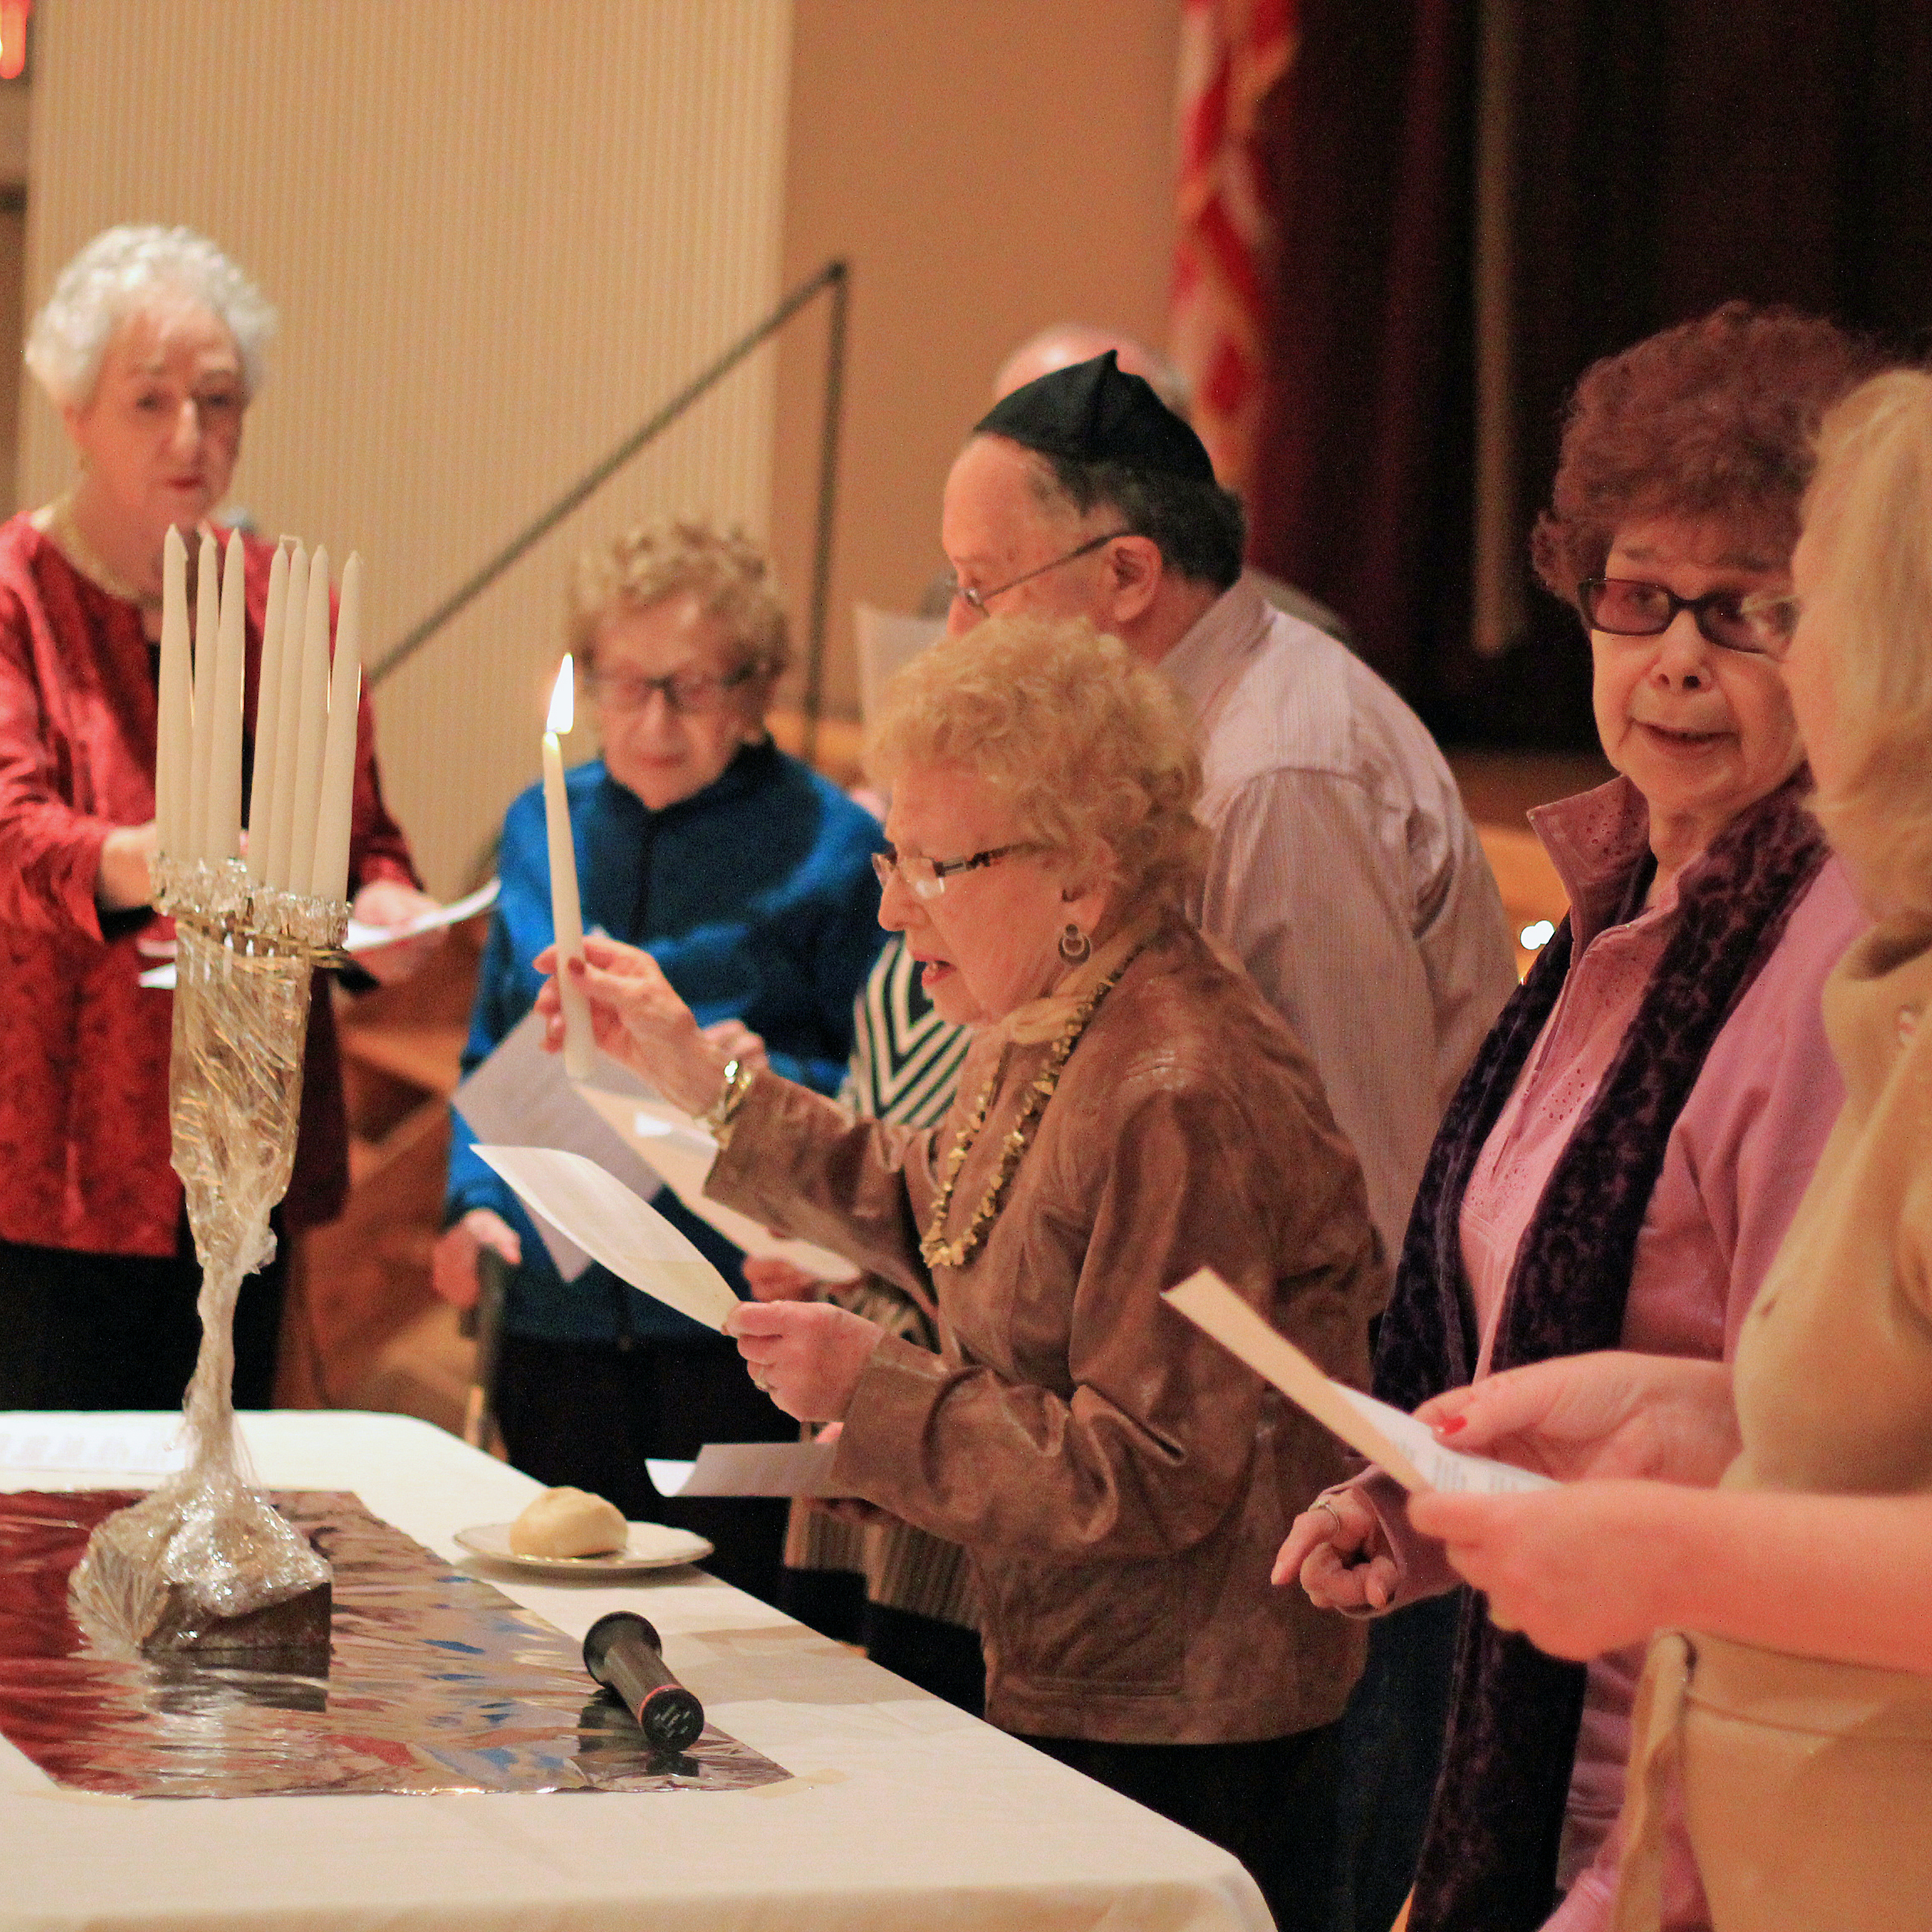 JCC of the Lehigh Valley Allentown Friendship Circle Senior Event Hanukkah CC Attribution 3.0 Kaitlyn Stefanowicz